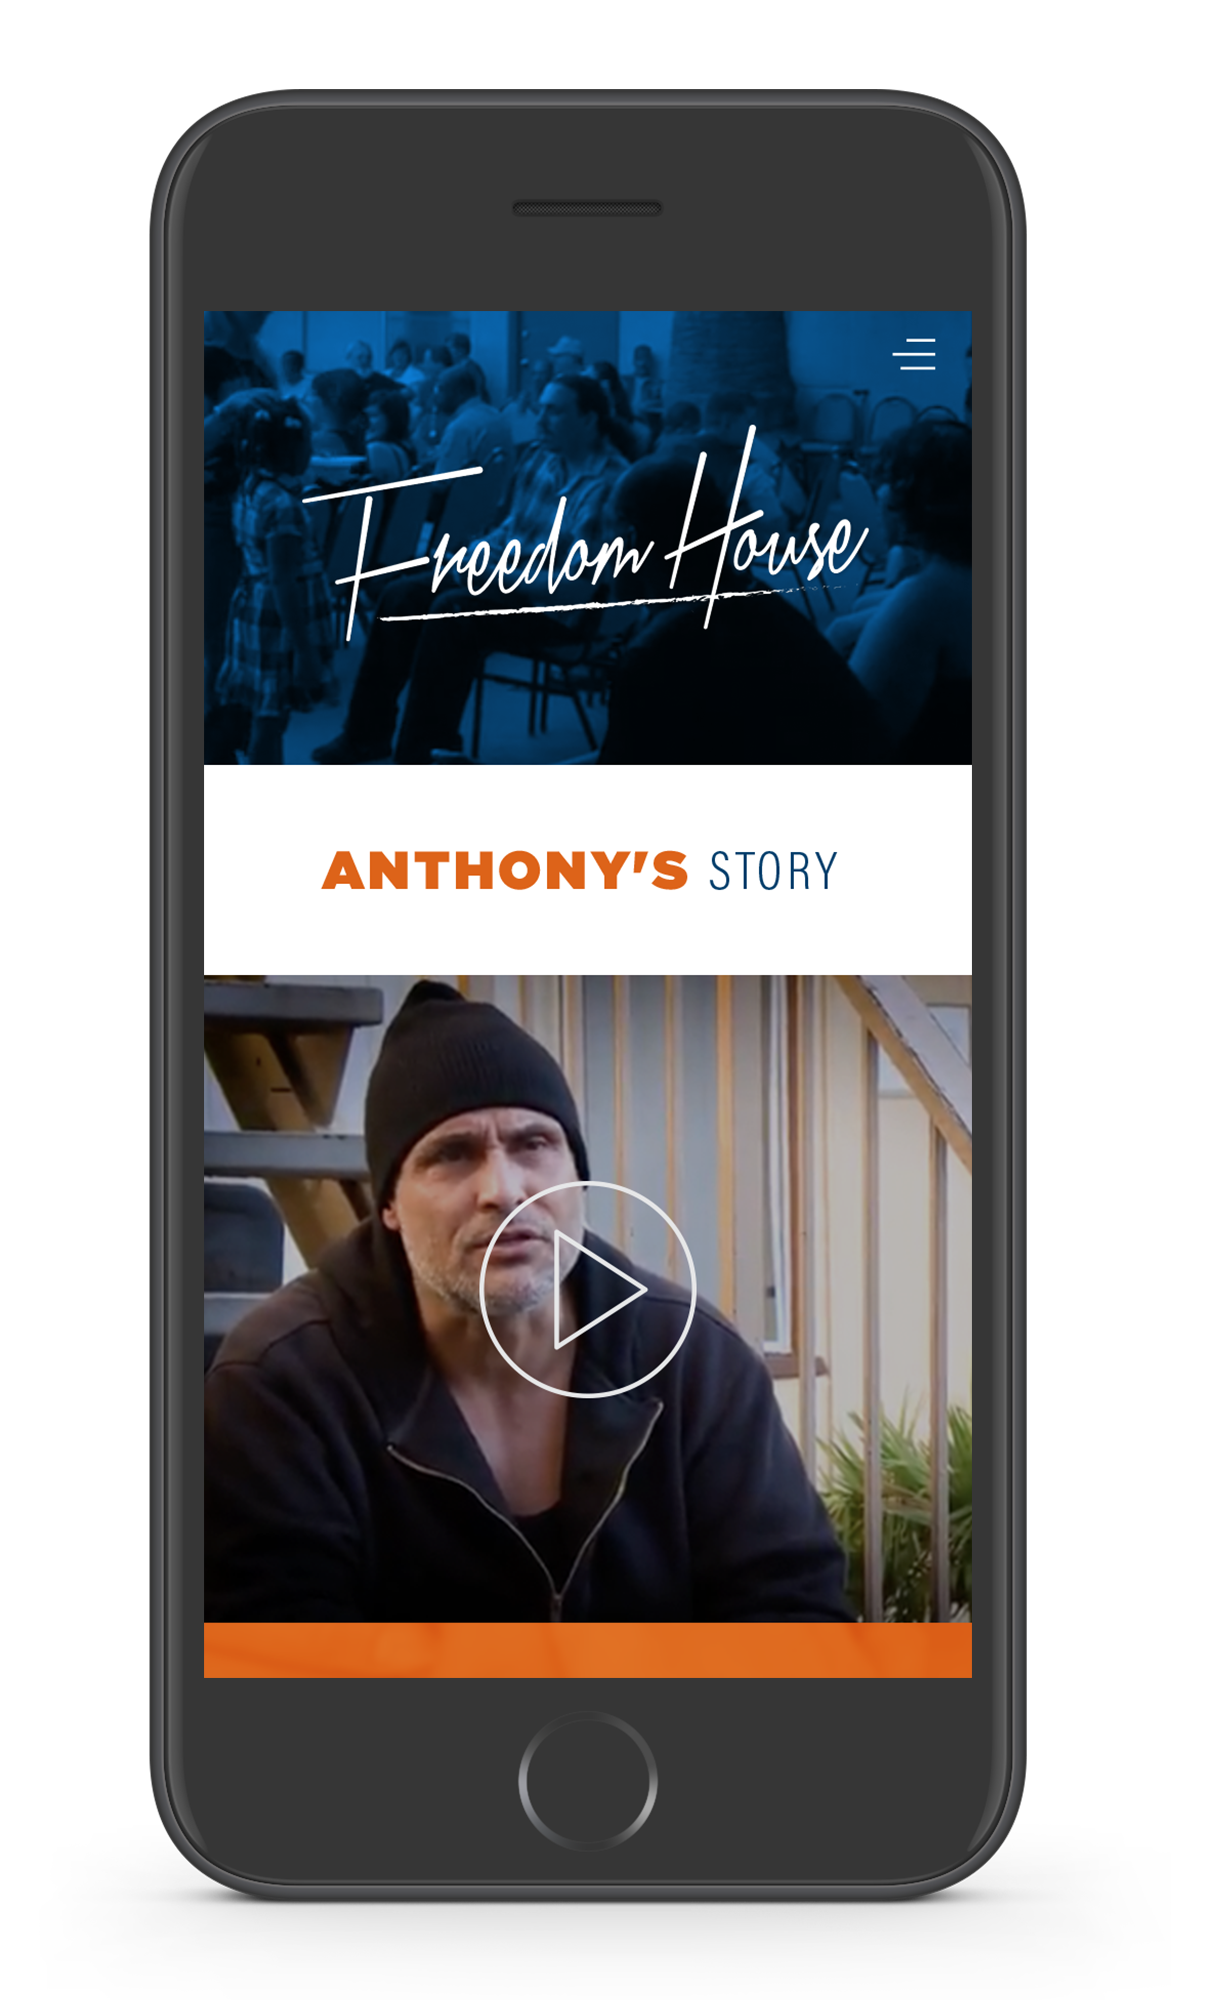 Testimonials - The mobile version of the testimonial page would include videos from patients who had first hand success at the Freedom House.